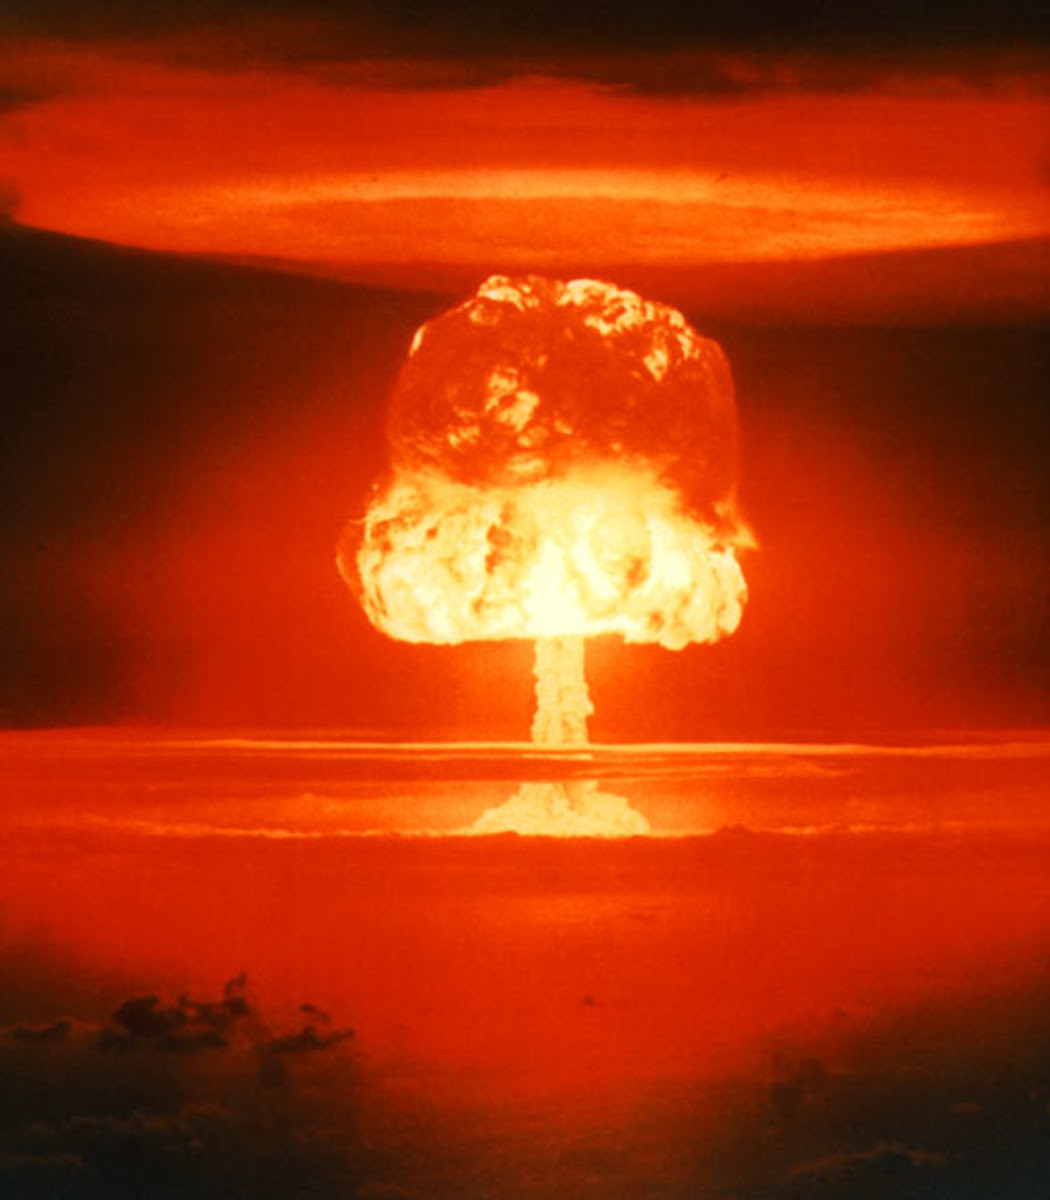 Whenever one thinks of the next big global war, this is what comes to mind.